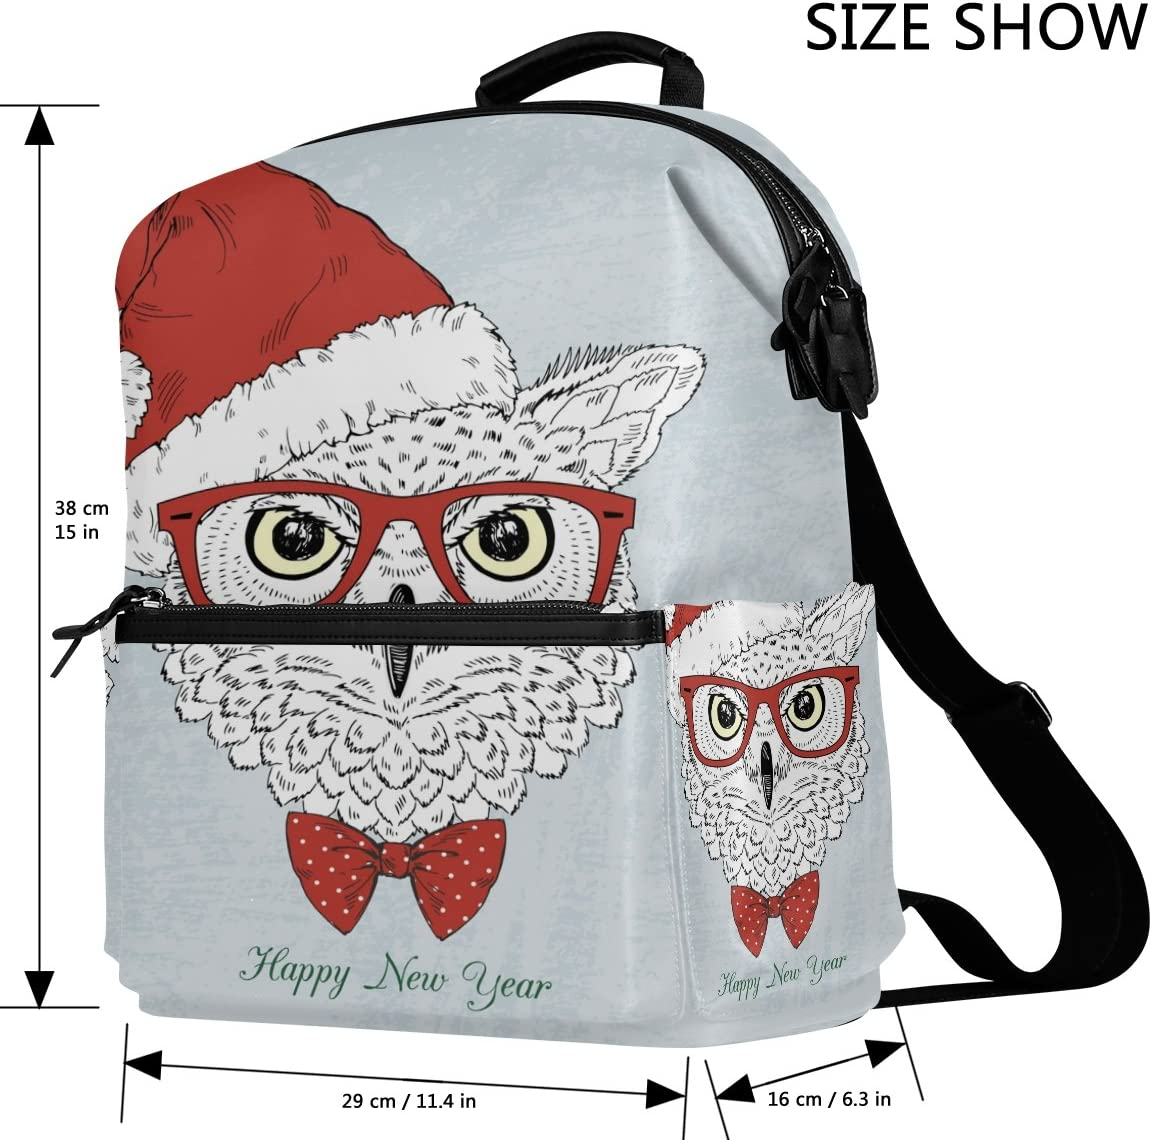 Laptop Backpack Lightweight Waterproof Travel Backpack Double Zipper Design with Painted Santa Claus And Hat School Bag Laptop Bookbag Daypack for Women Kids